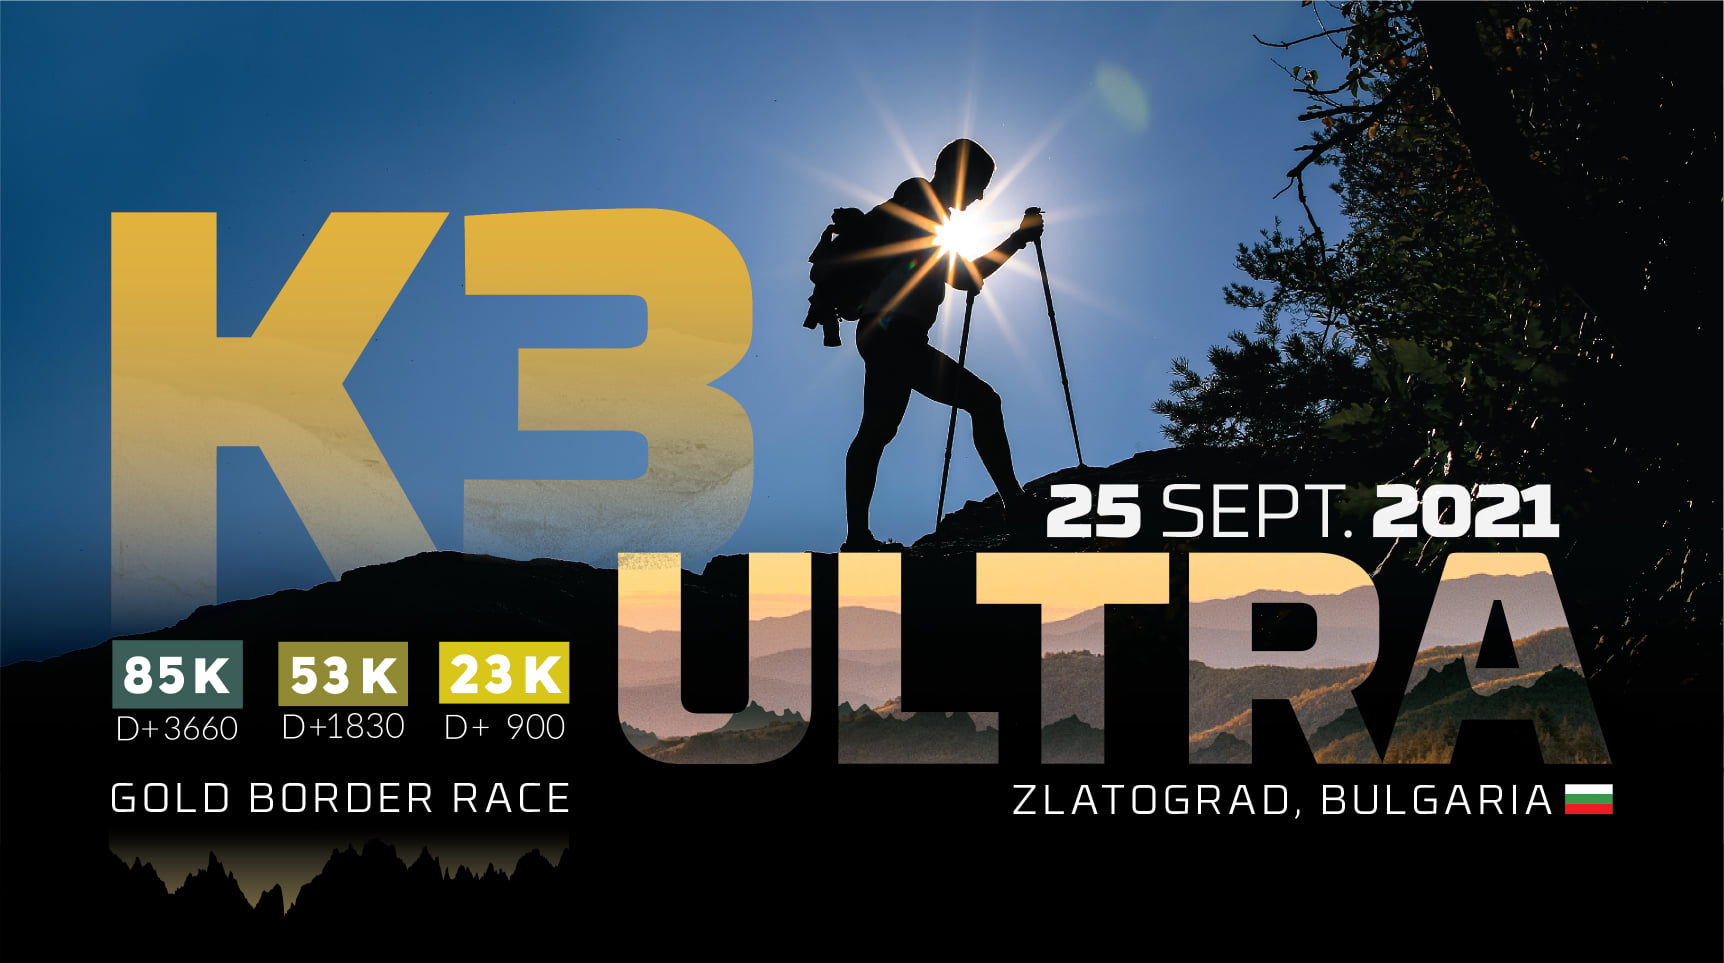 The third edition of K3 Utra will take place on 25.09.2021